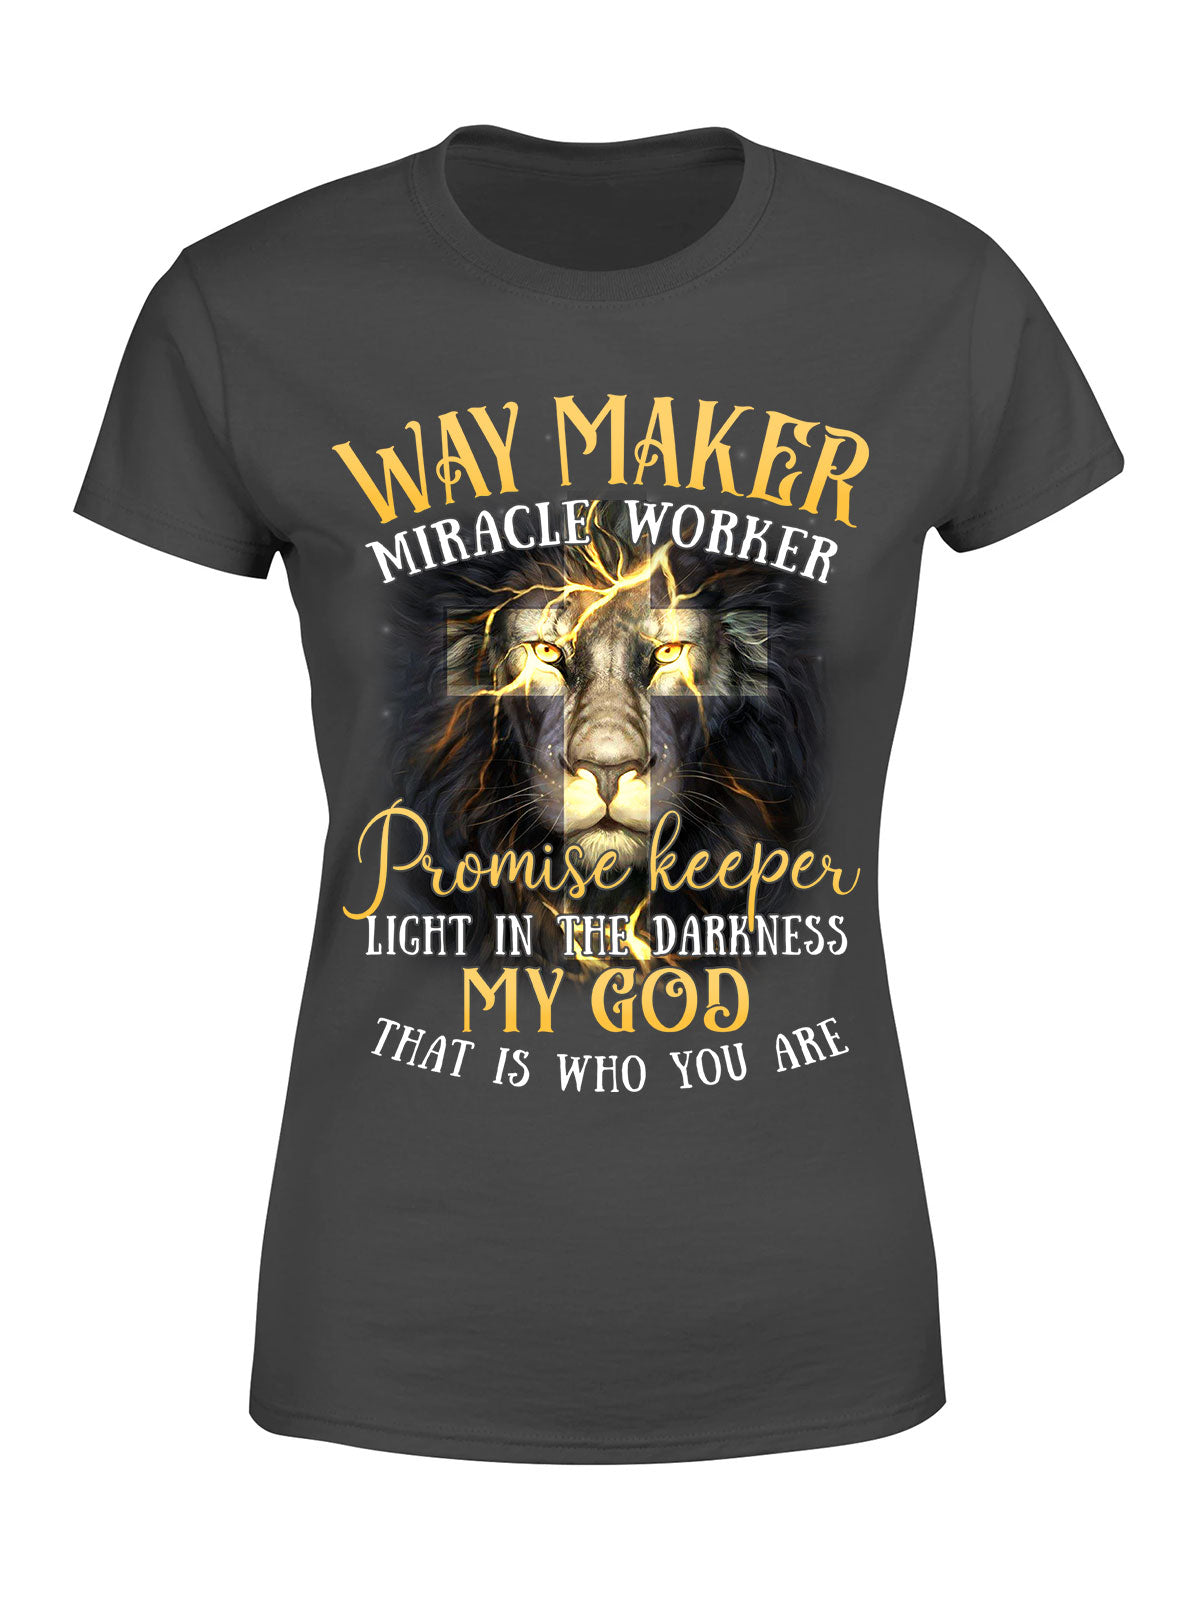 Classic Ladies T-Shirt - Way Maker, Miracle Worker - Lion Version - Christian T-shirt